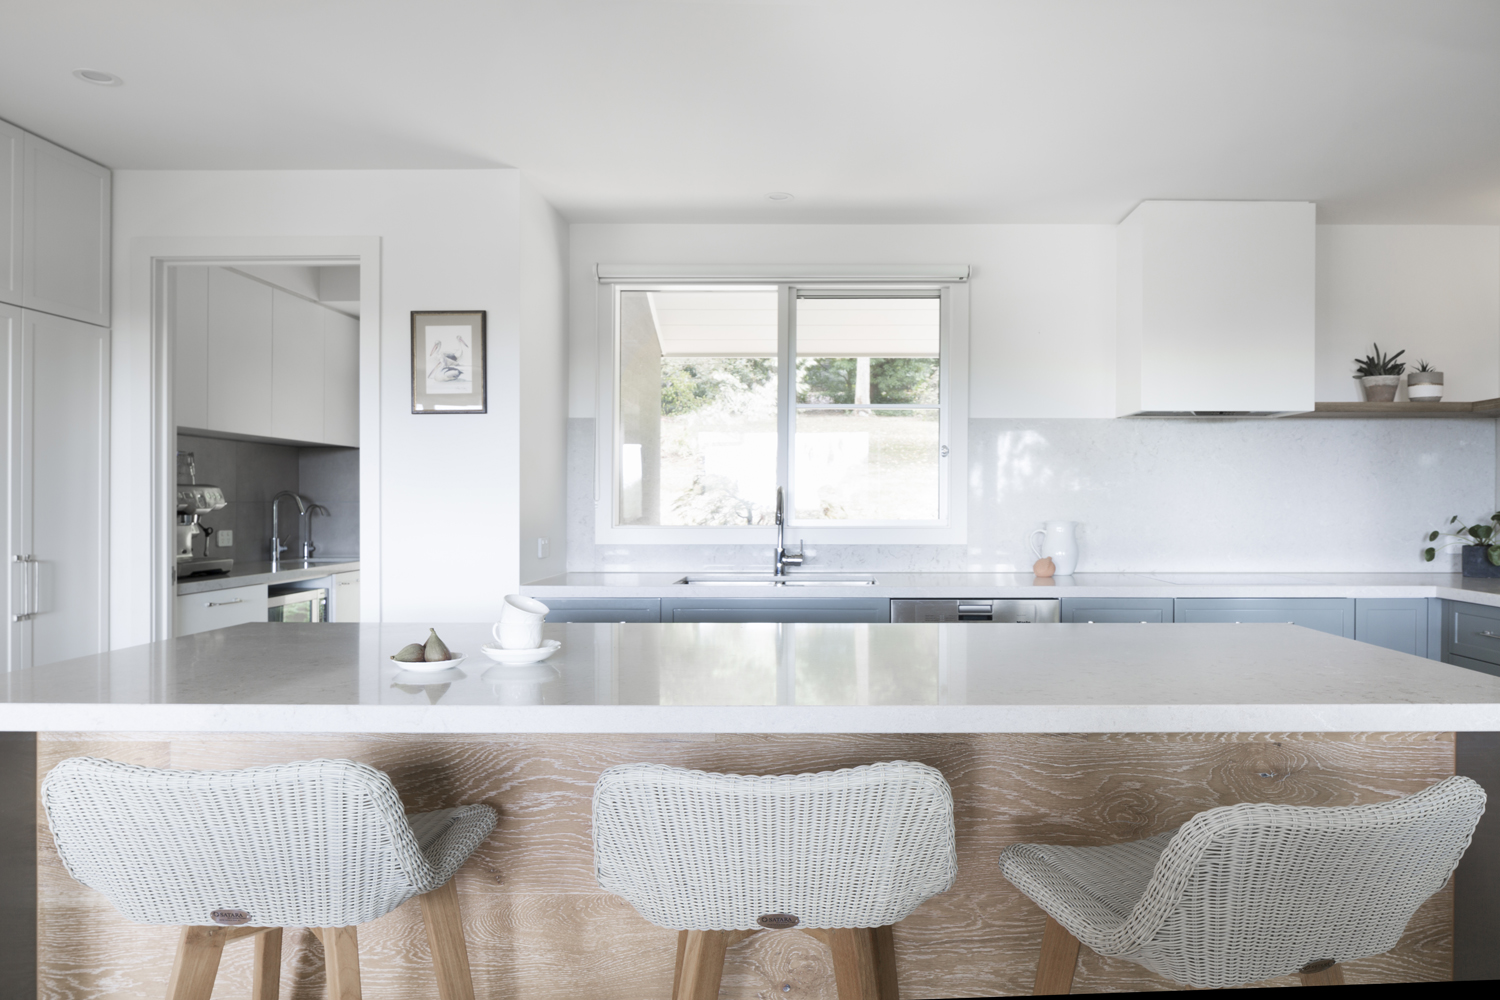 Contemporary country kitchen design at Red Hill Mornington Peninsula by interior designer Meredith Lee. Interior design, interior decoration and interior styling by Meredith Lee